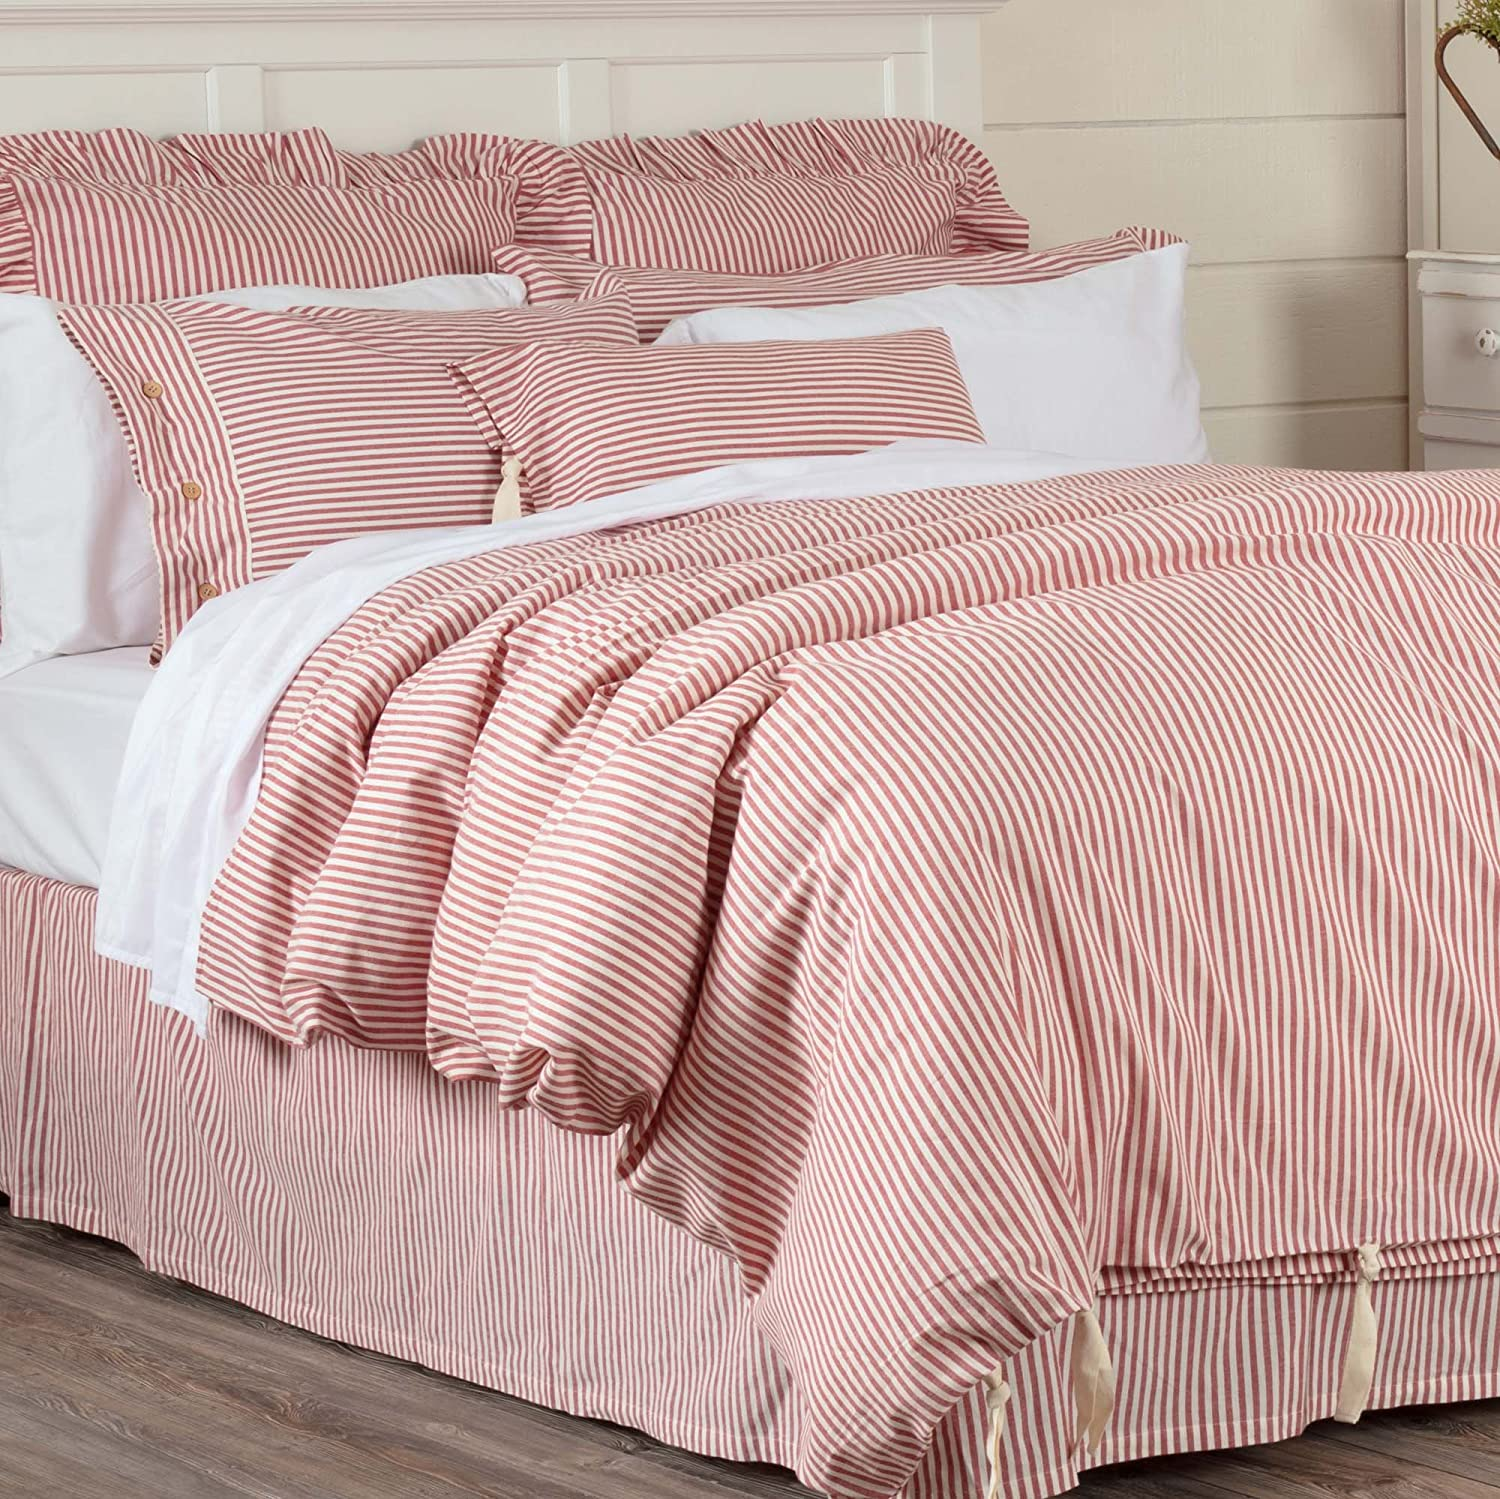 Piper Classics Farmhouse Ticking Stripe Duvet Cover Bedding, Red & Off-White, Queen 92x91, Comforter Cover w/Twill Ties, Soft, Comfortable, Farmhouse Bedroom Décor